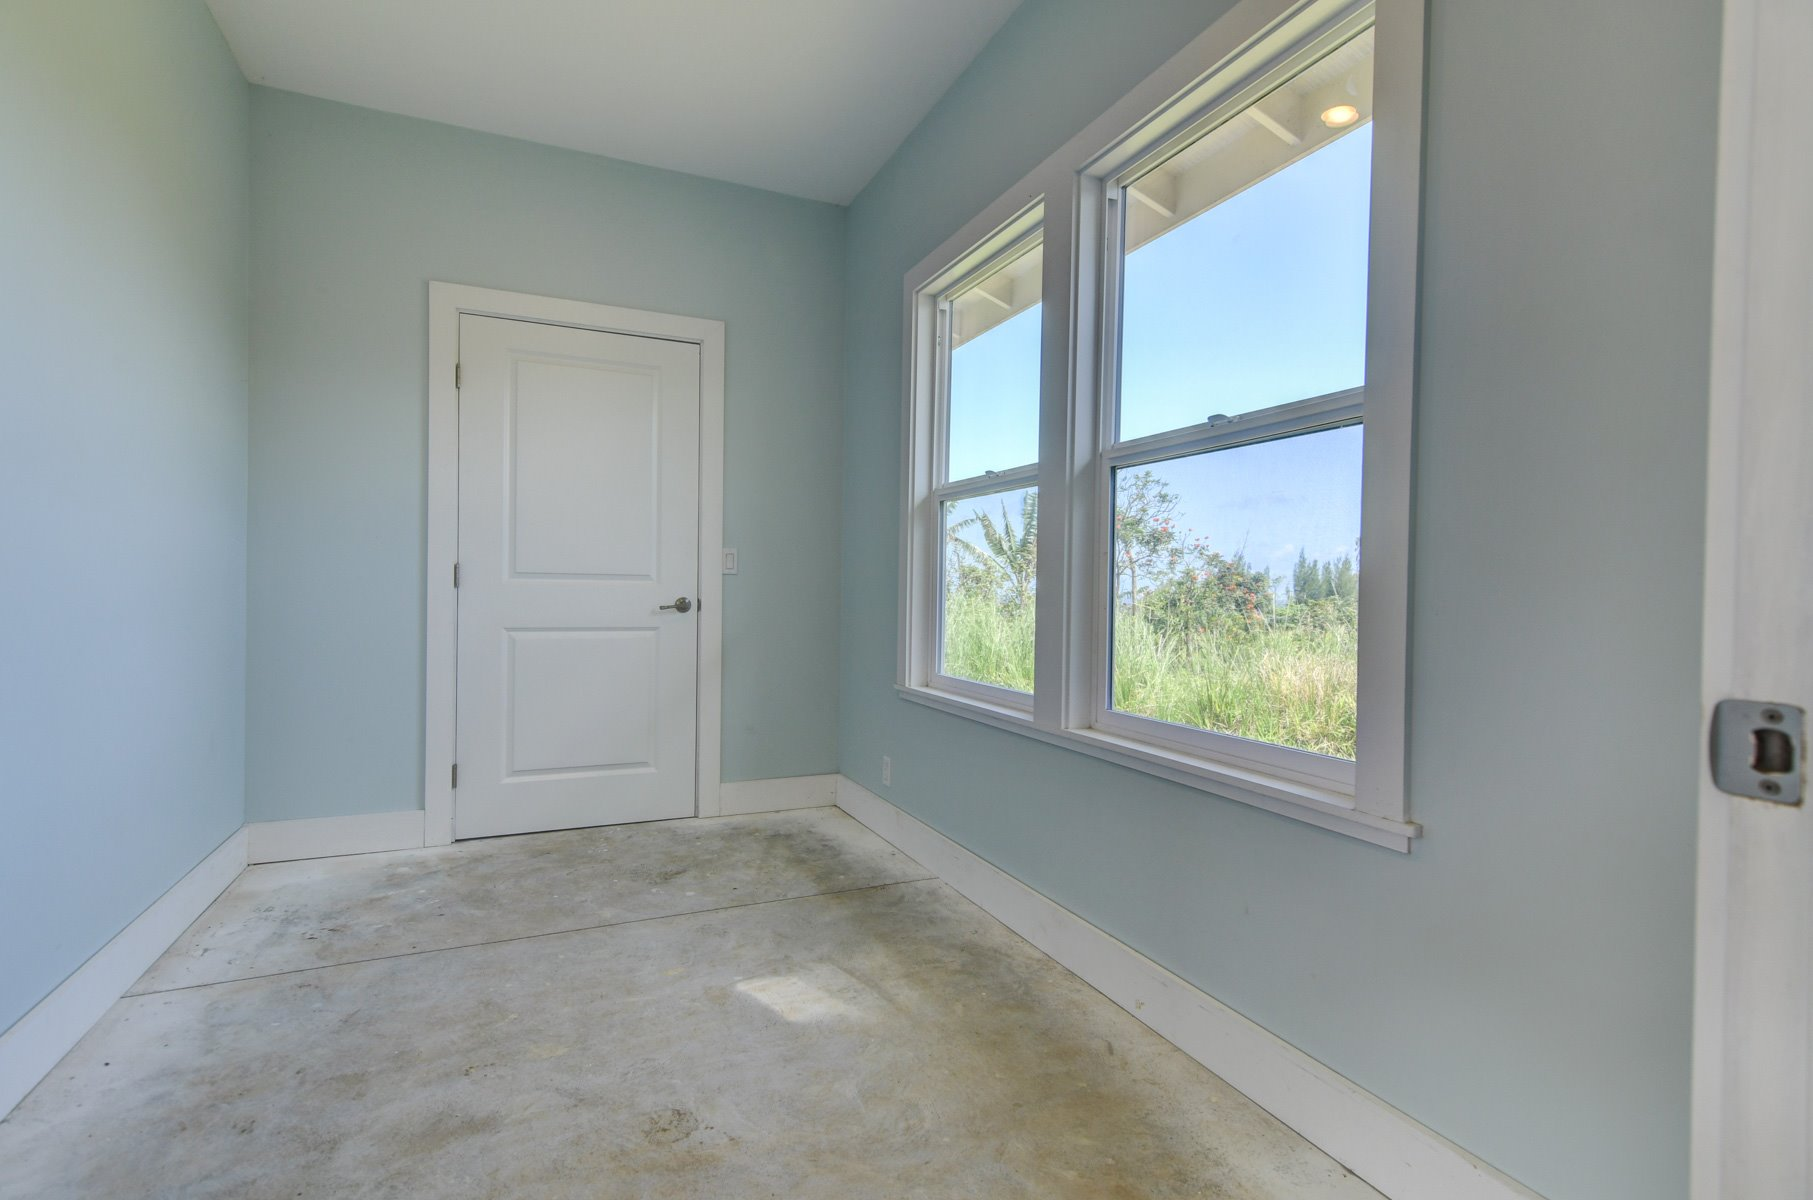 A side room located in garage. This room has an oceanview and would make for a perfect office